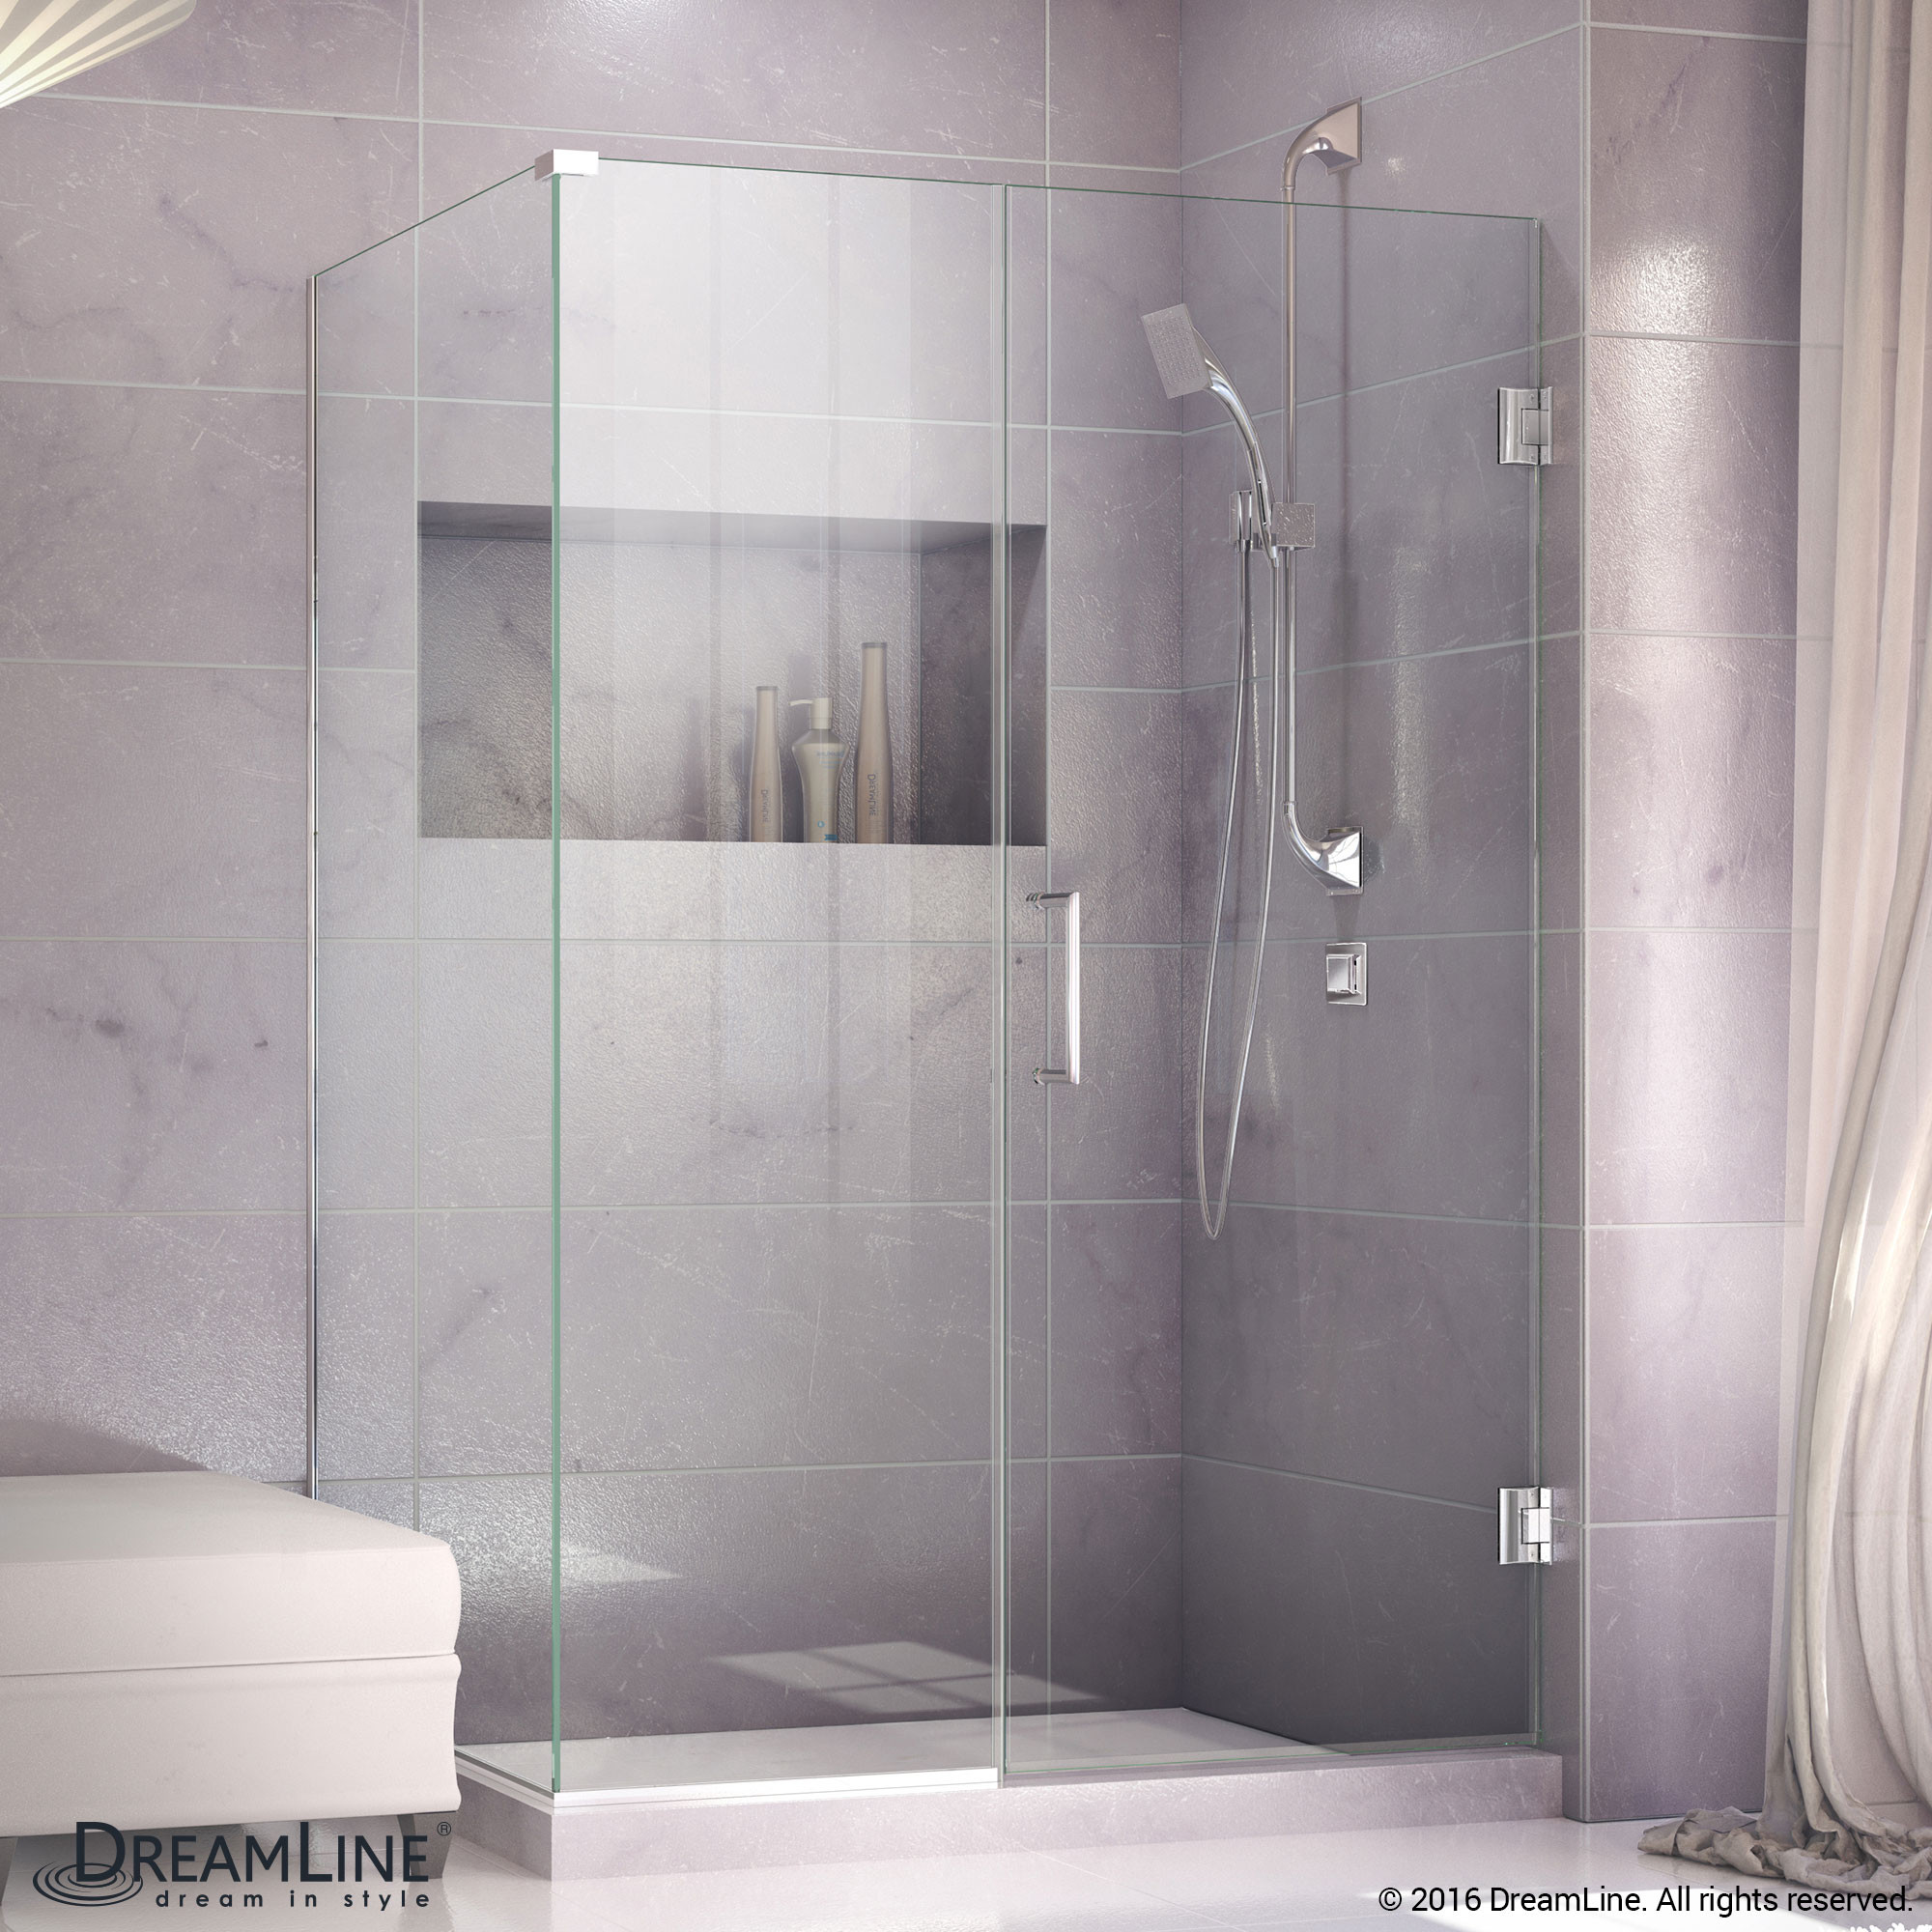 DreamLine SHEN-24435300-01 Unidoor Plus Hinged Shower Enclosure In Chrome Finish Hardware